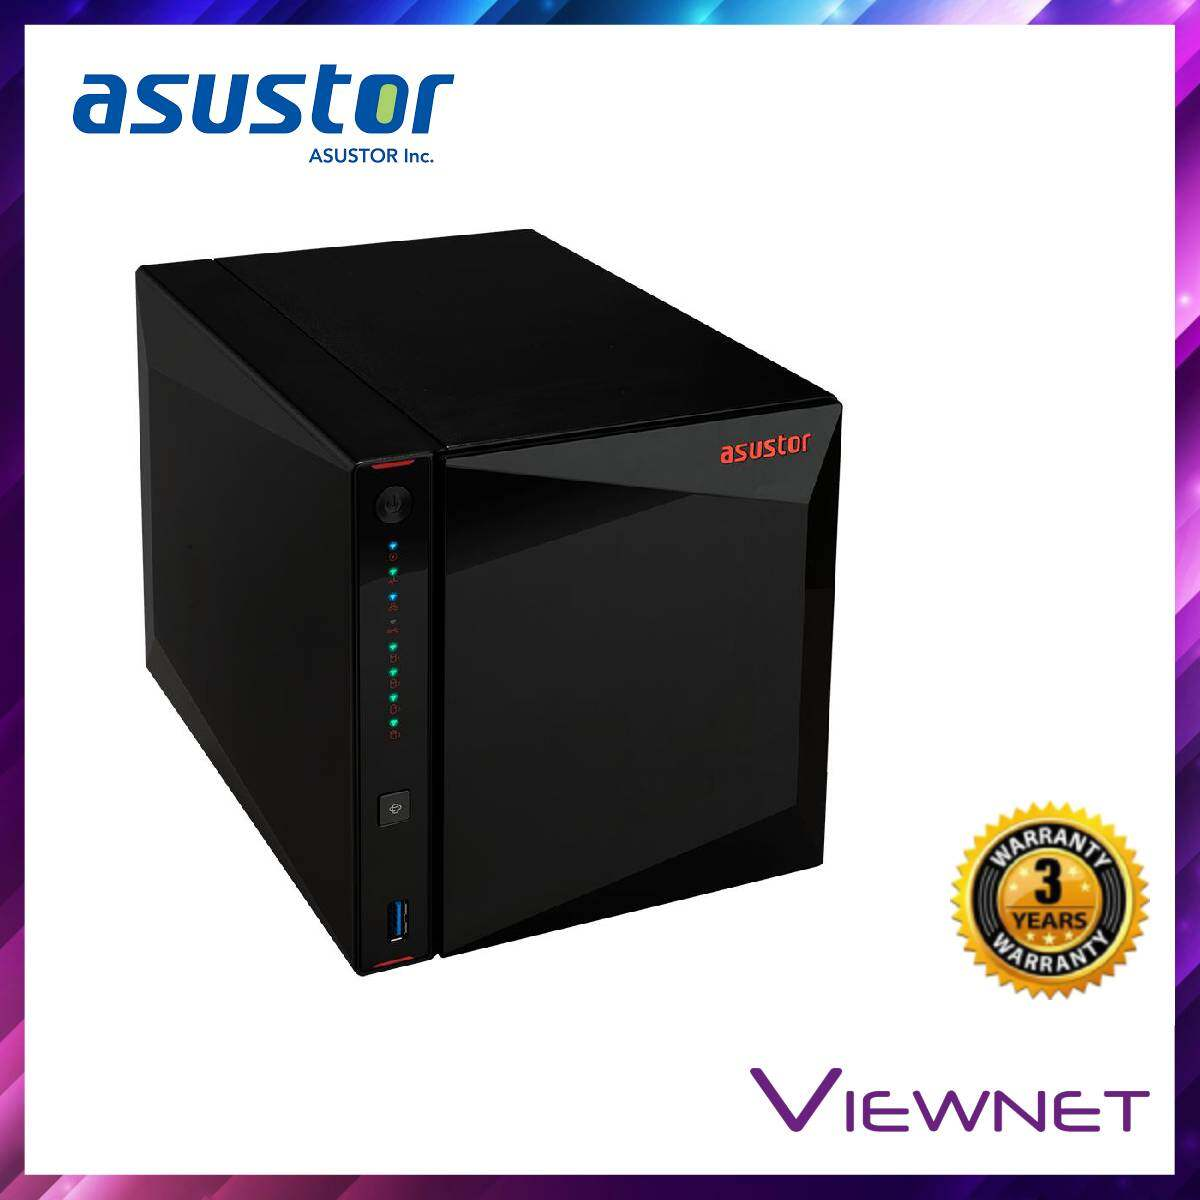 Asustor Enclosure 4-BAYS/INTEL CELERON J4105 QC 1.5GHz/4GB DDR4/2x 2.5GBE LAN/HDMI/EXPANDABLE-16U NAS (AS5304T)